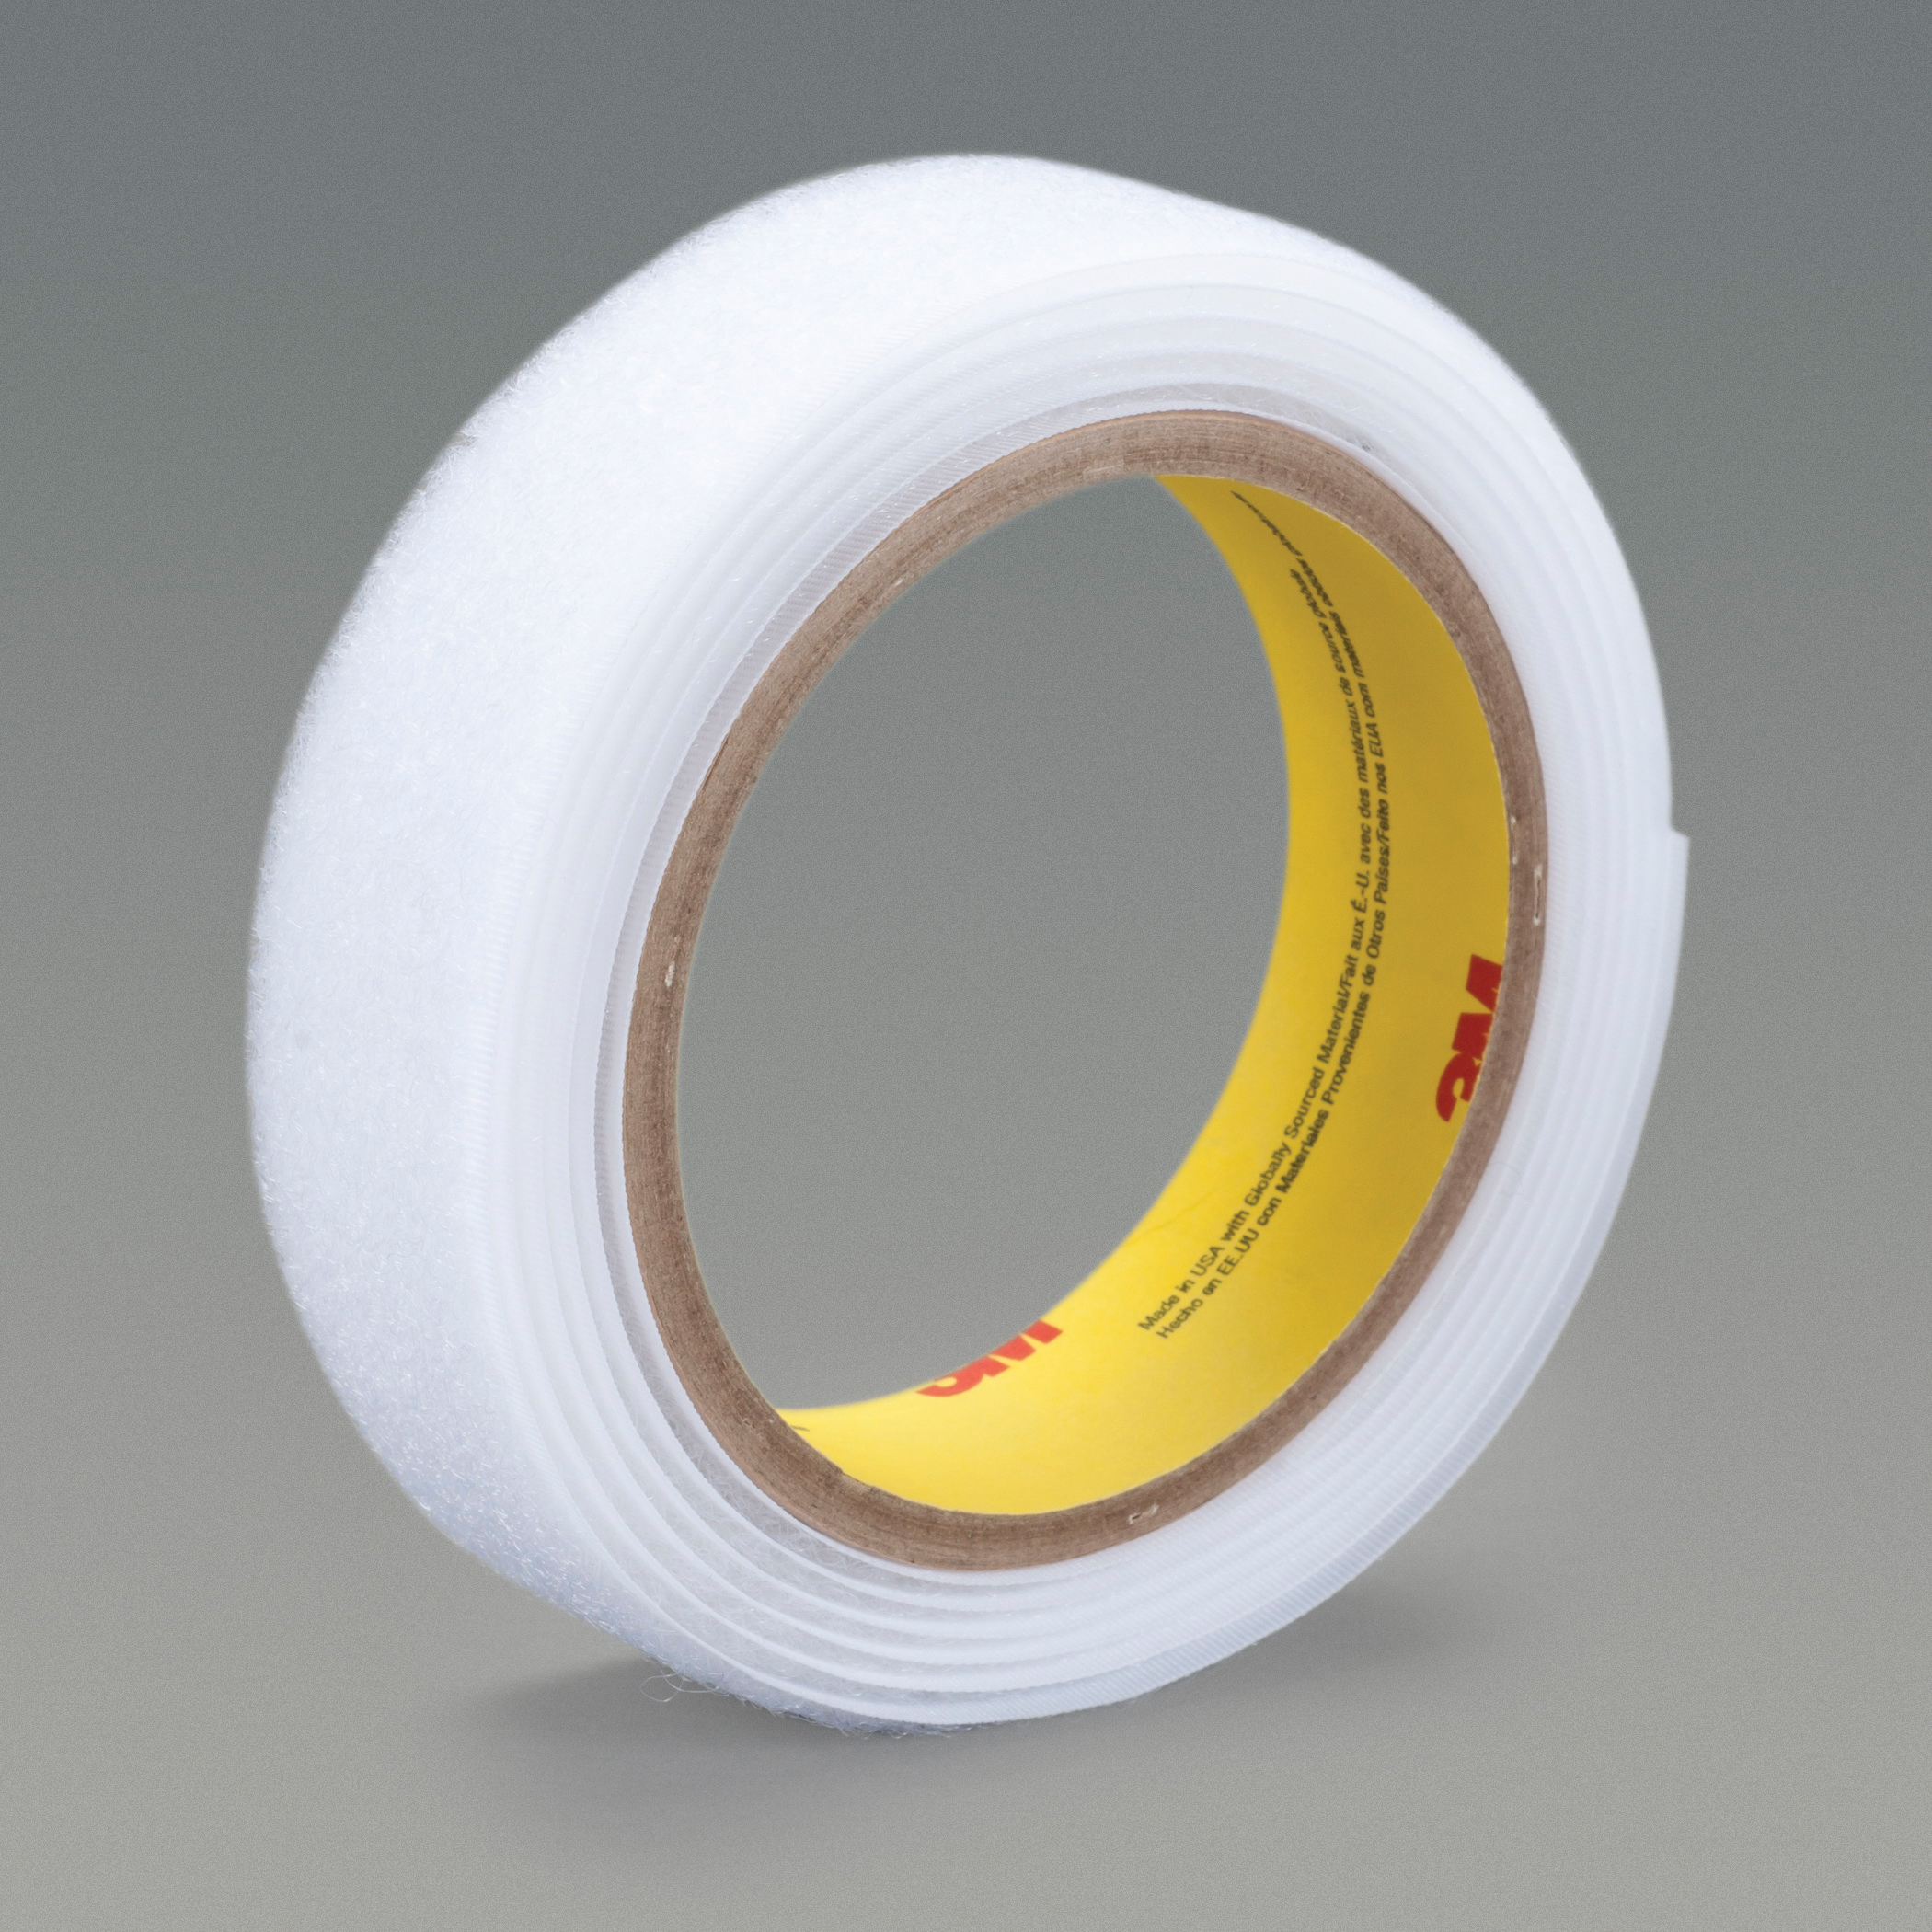 3M™ 021200-86247 Reclosable Hook Fastener Tape, 50 yd L x 2 in W, 0.15 in THK Engaged, Polyethylene Film Liner Adhesive, Woven Nylon Backing, White